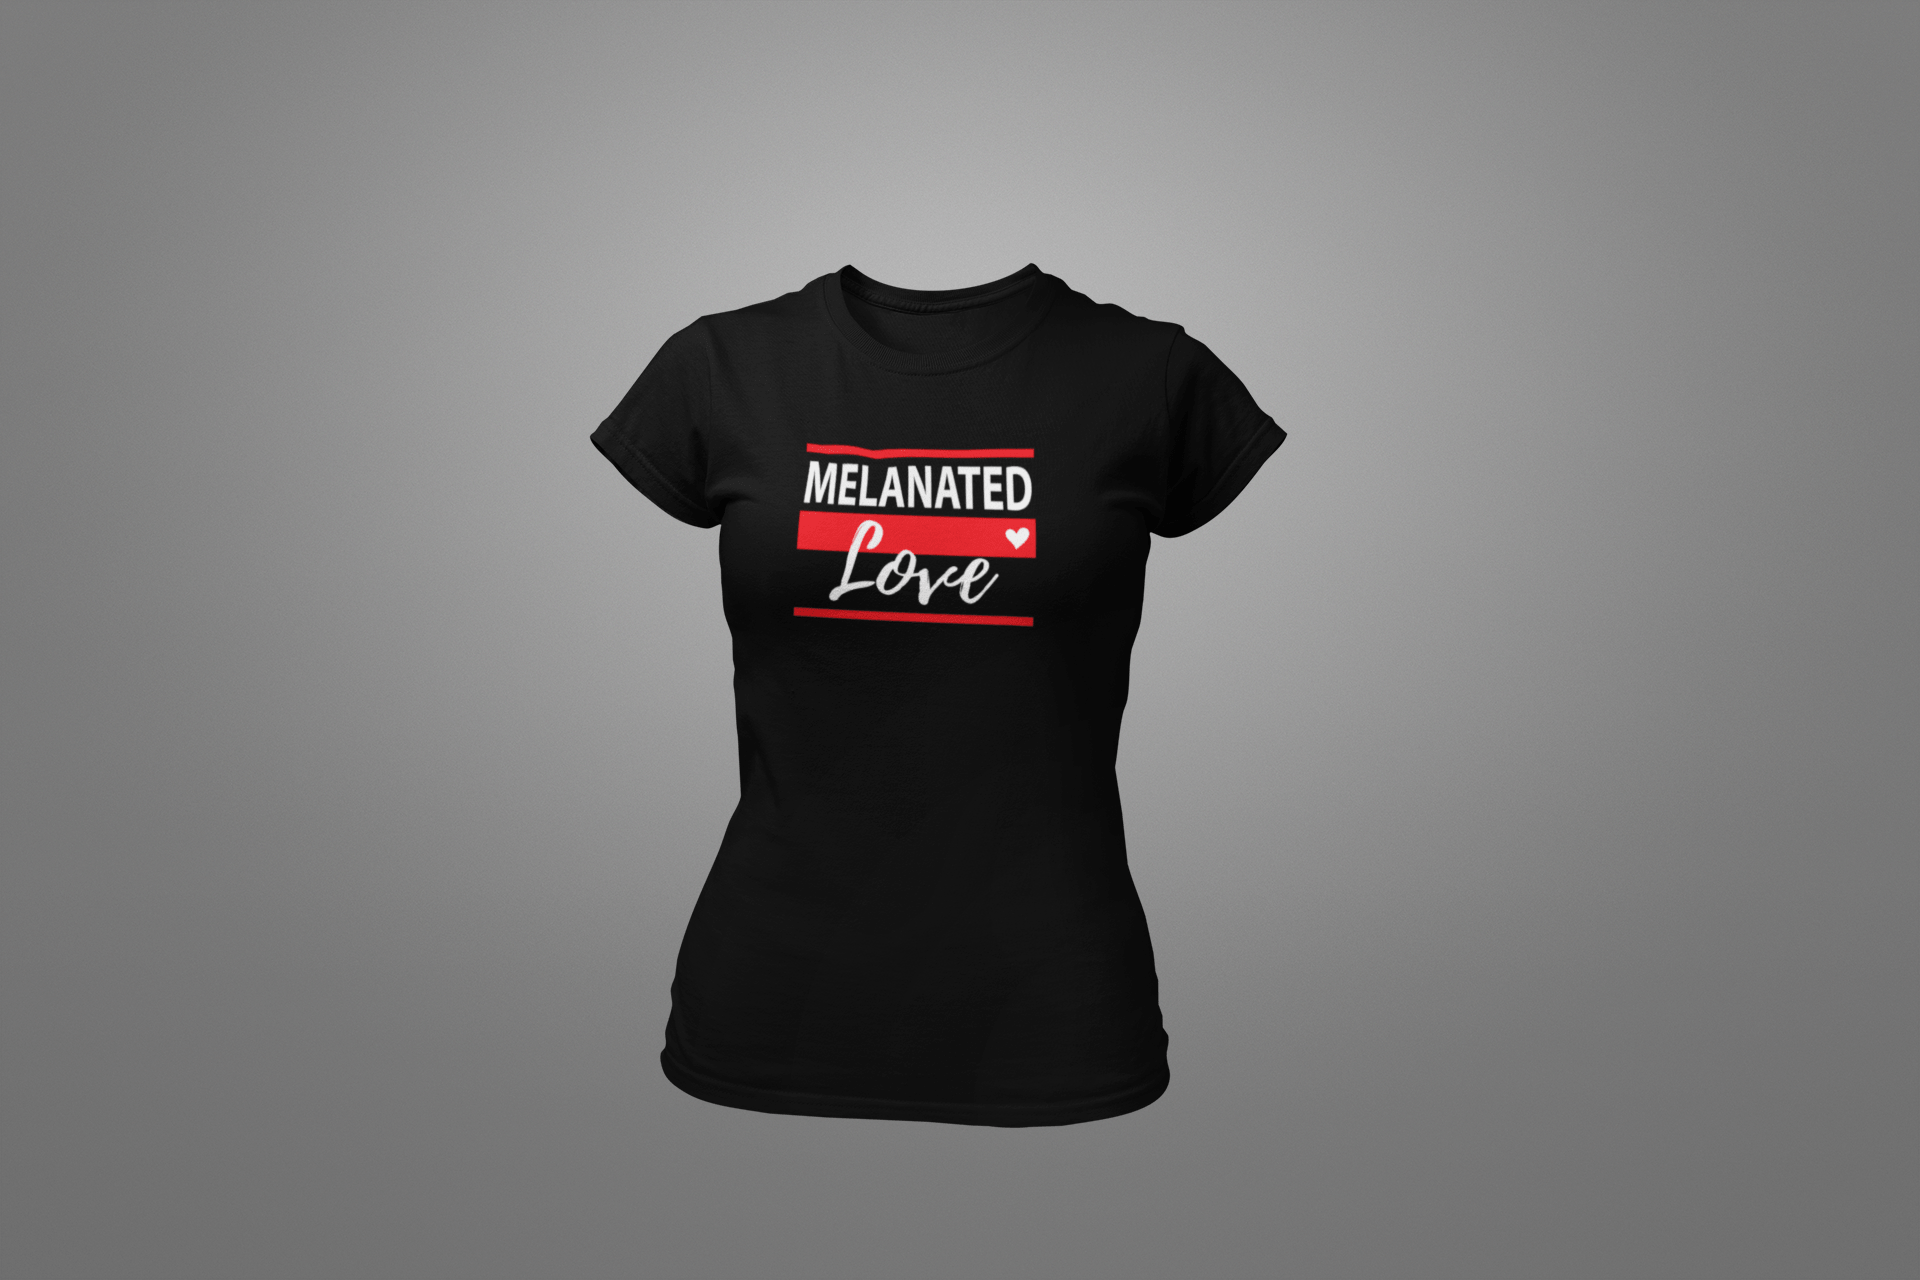 Melanated Love Ladies' T-shirt